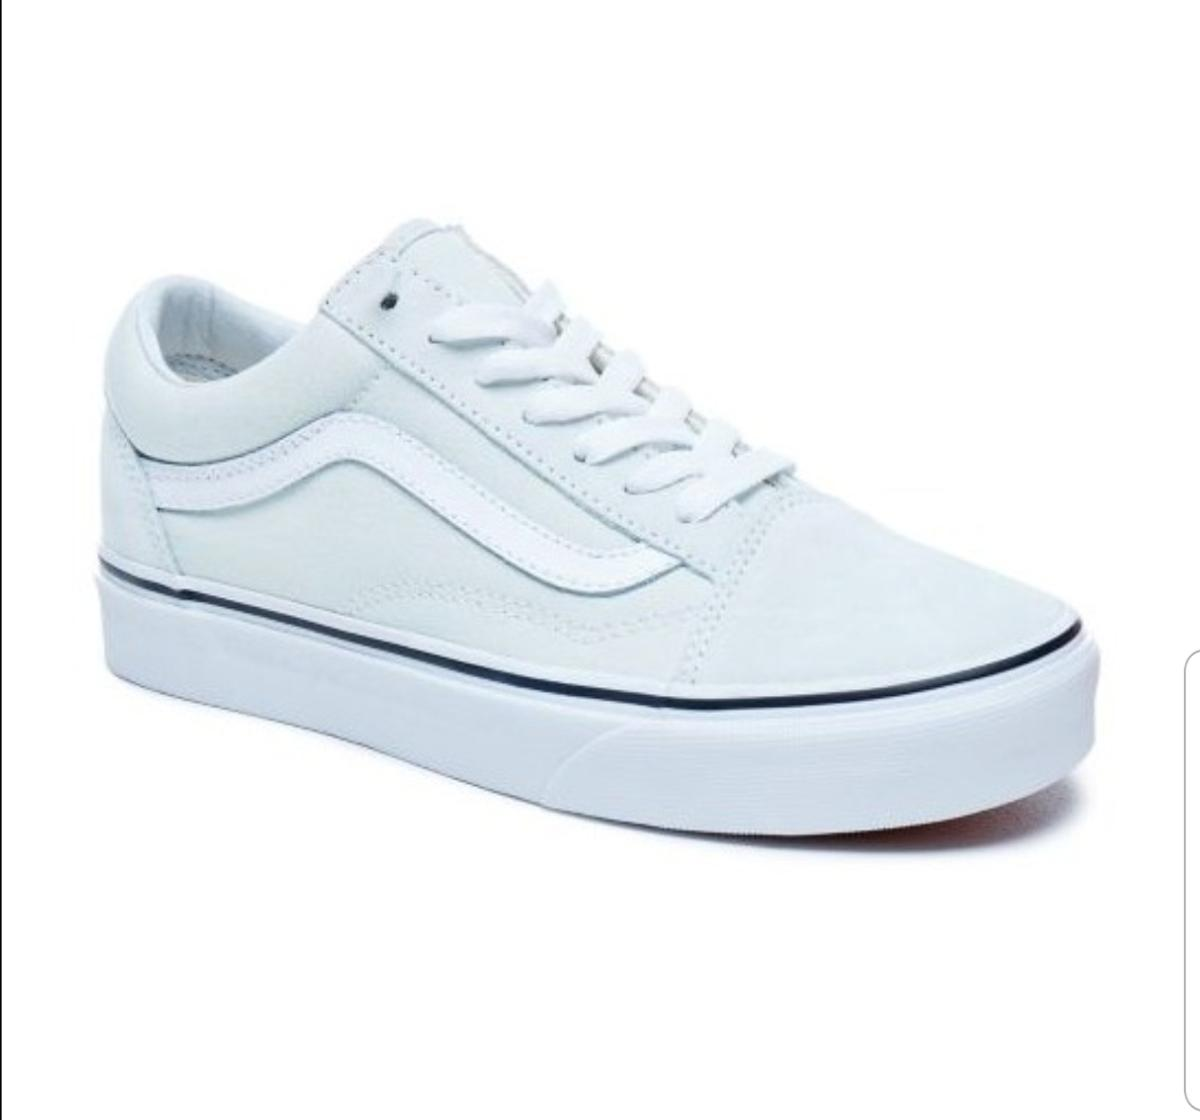 wholesale sales fresh styles hot sale online Vans Trainers - Men's in NW7 London for £15.00 for sale | Shpock